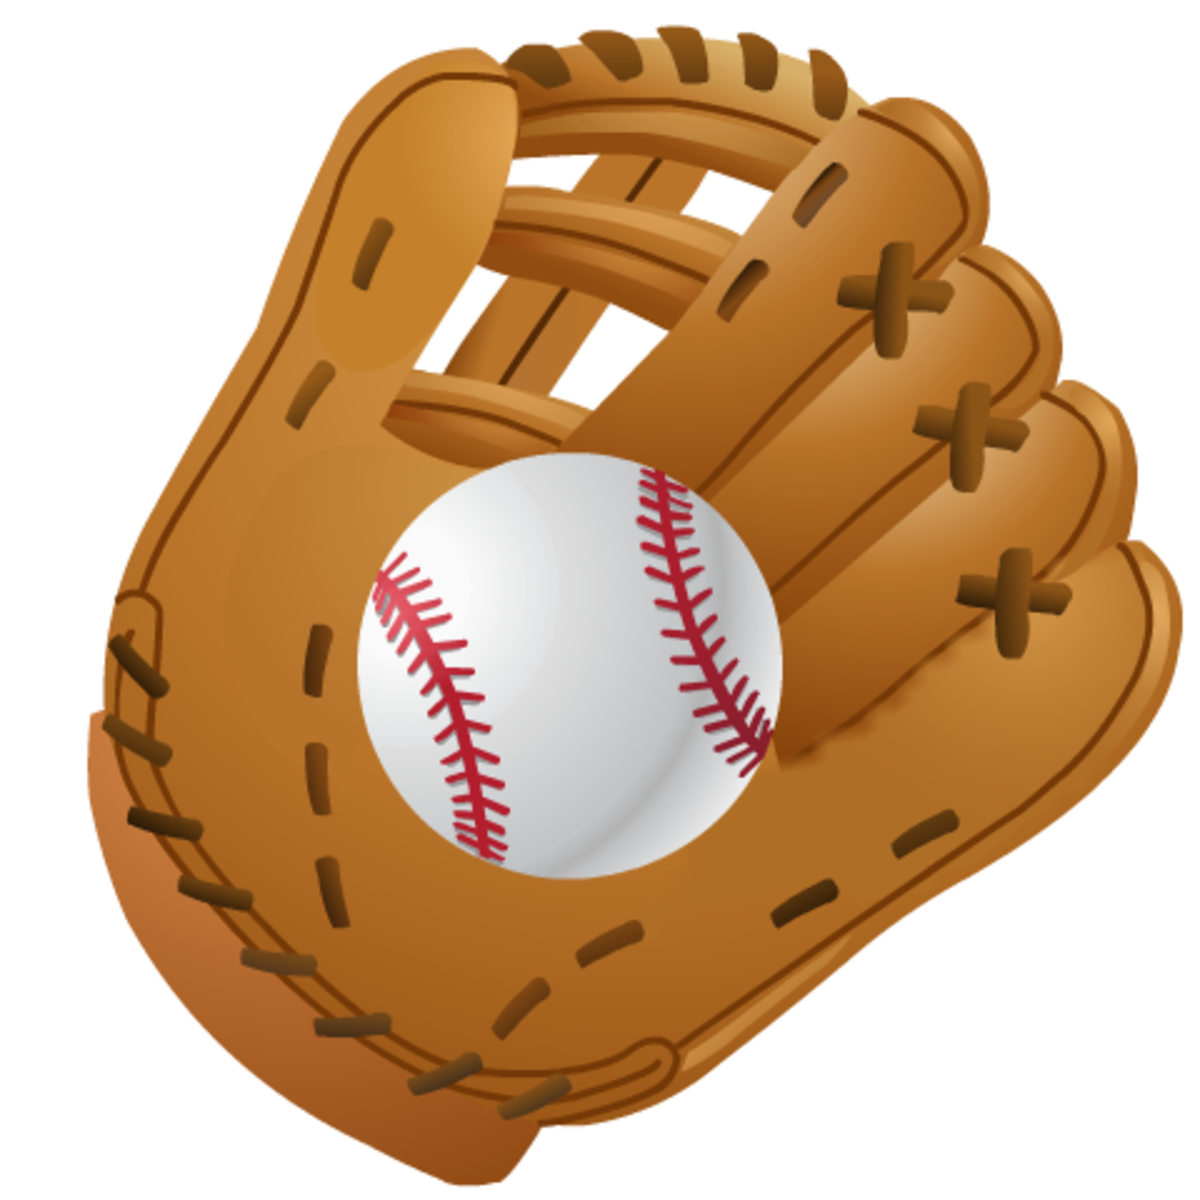 Softball clip art: baseball glove and ball